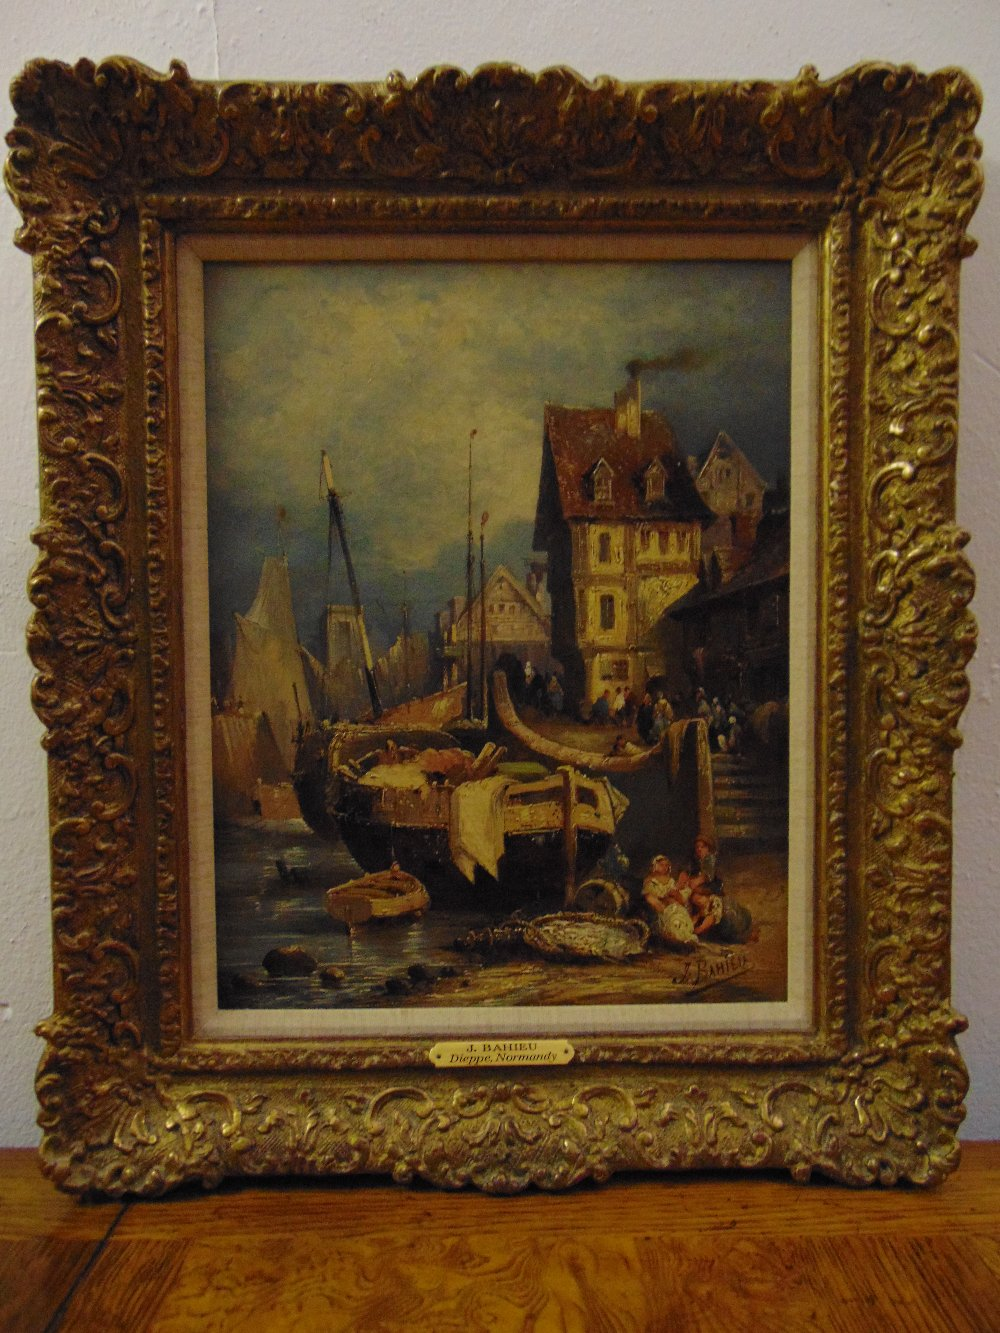 Lot 85 - Jules George Bahieu 1860-1895 framed oil on canvas titled Dieppe Normandy with fishing boats in